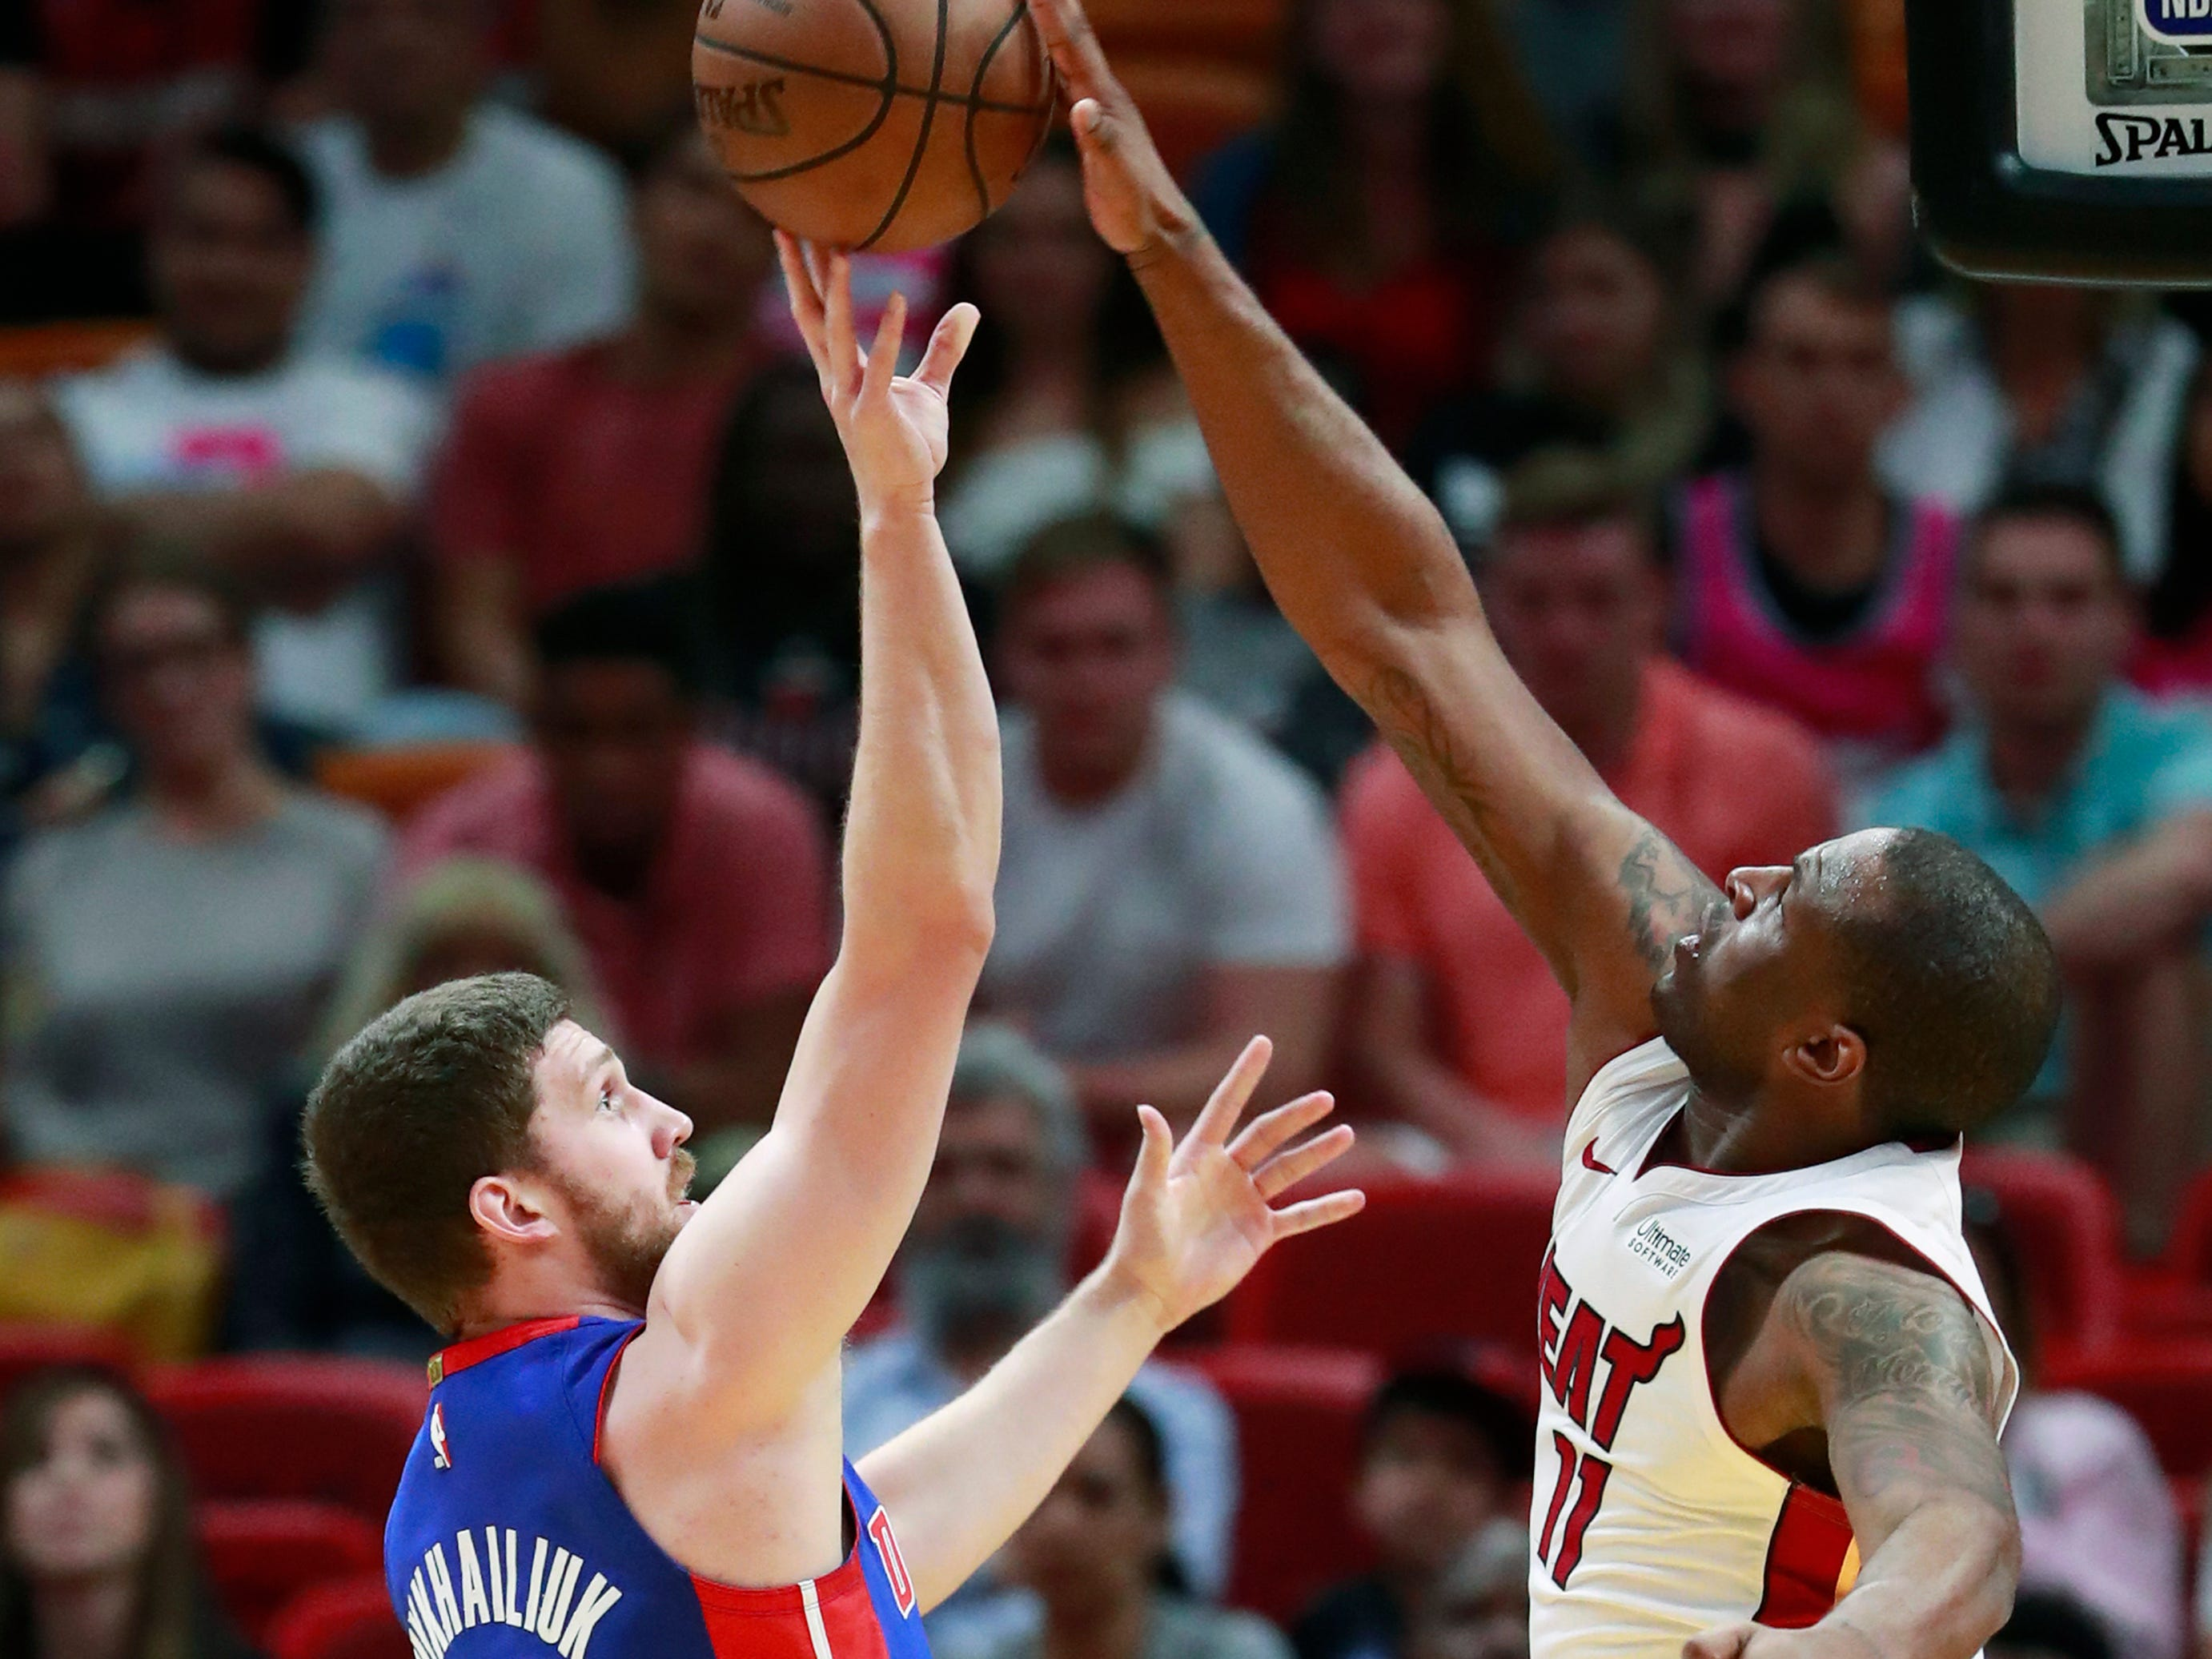 Miami Heat guard Dion Waiters (11) swats a shot away from Detroit Pistons guard Sviatoslav Mykhailiuk (19) during the second half.